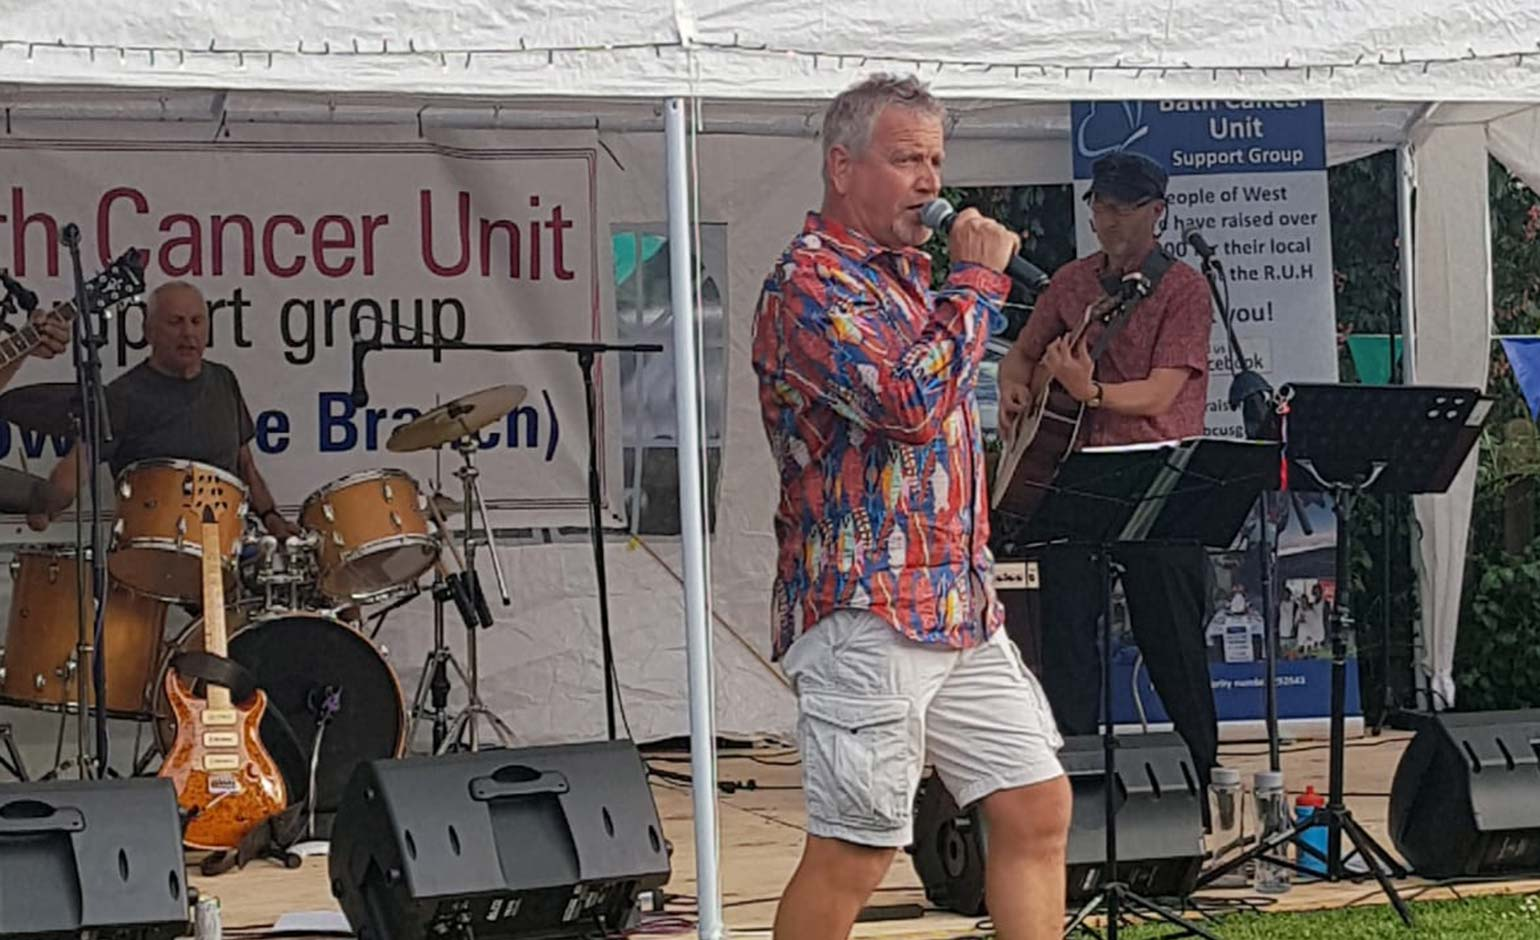 Mini music festival raises over £2,500 for Bath Cancer Unit Support Group | Bath Echo